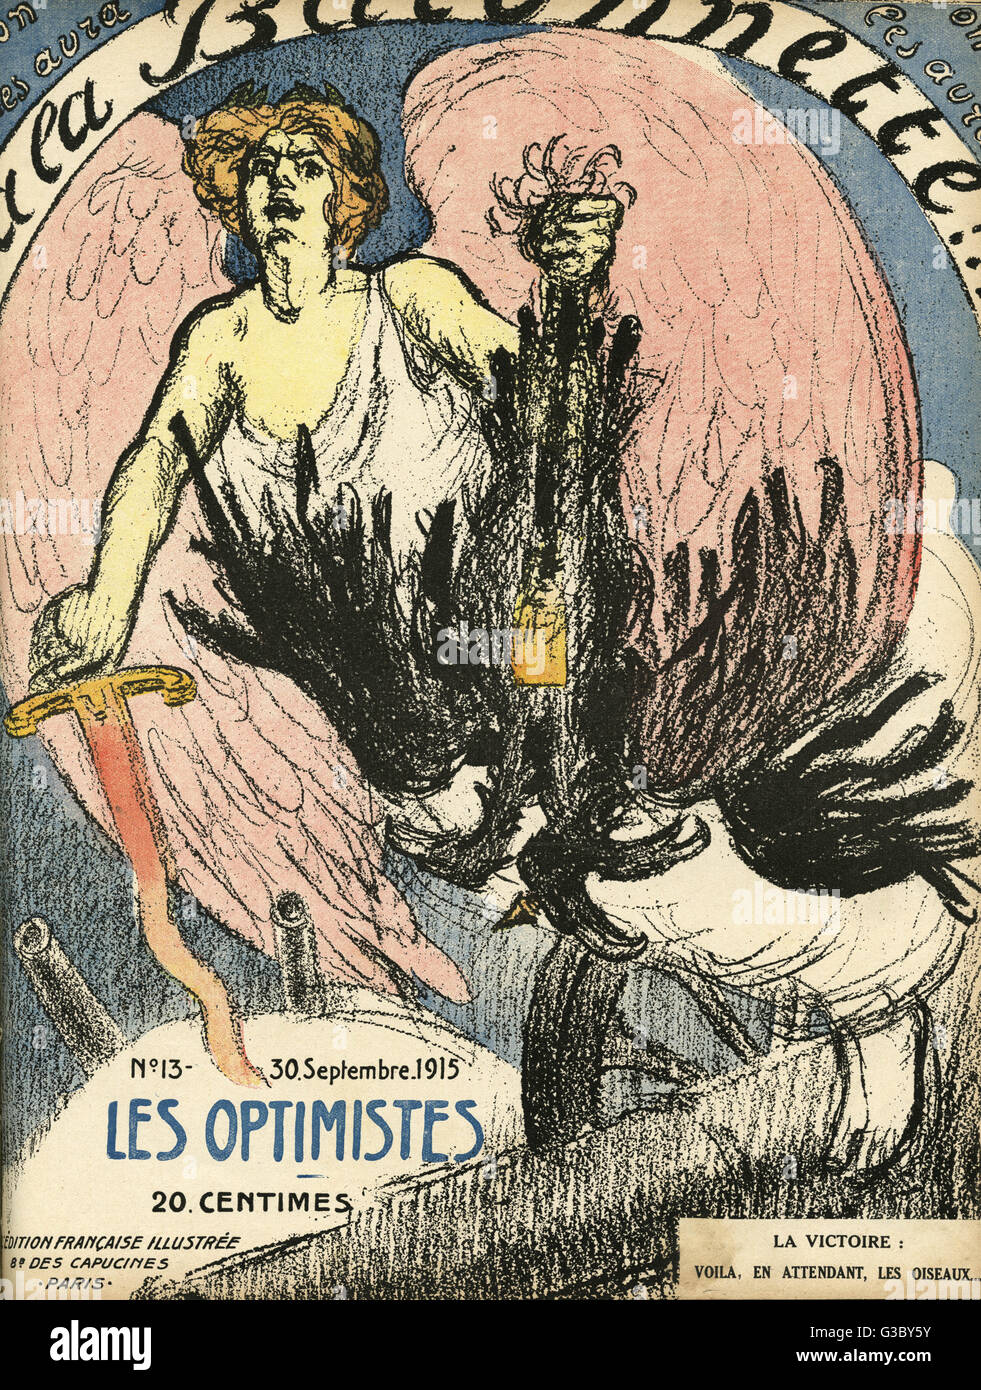 Front cover of La Baionnette, an issue focusing on optimists, showing a rather dubiously successful allegorical - Stock Image